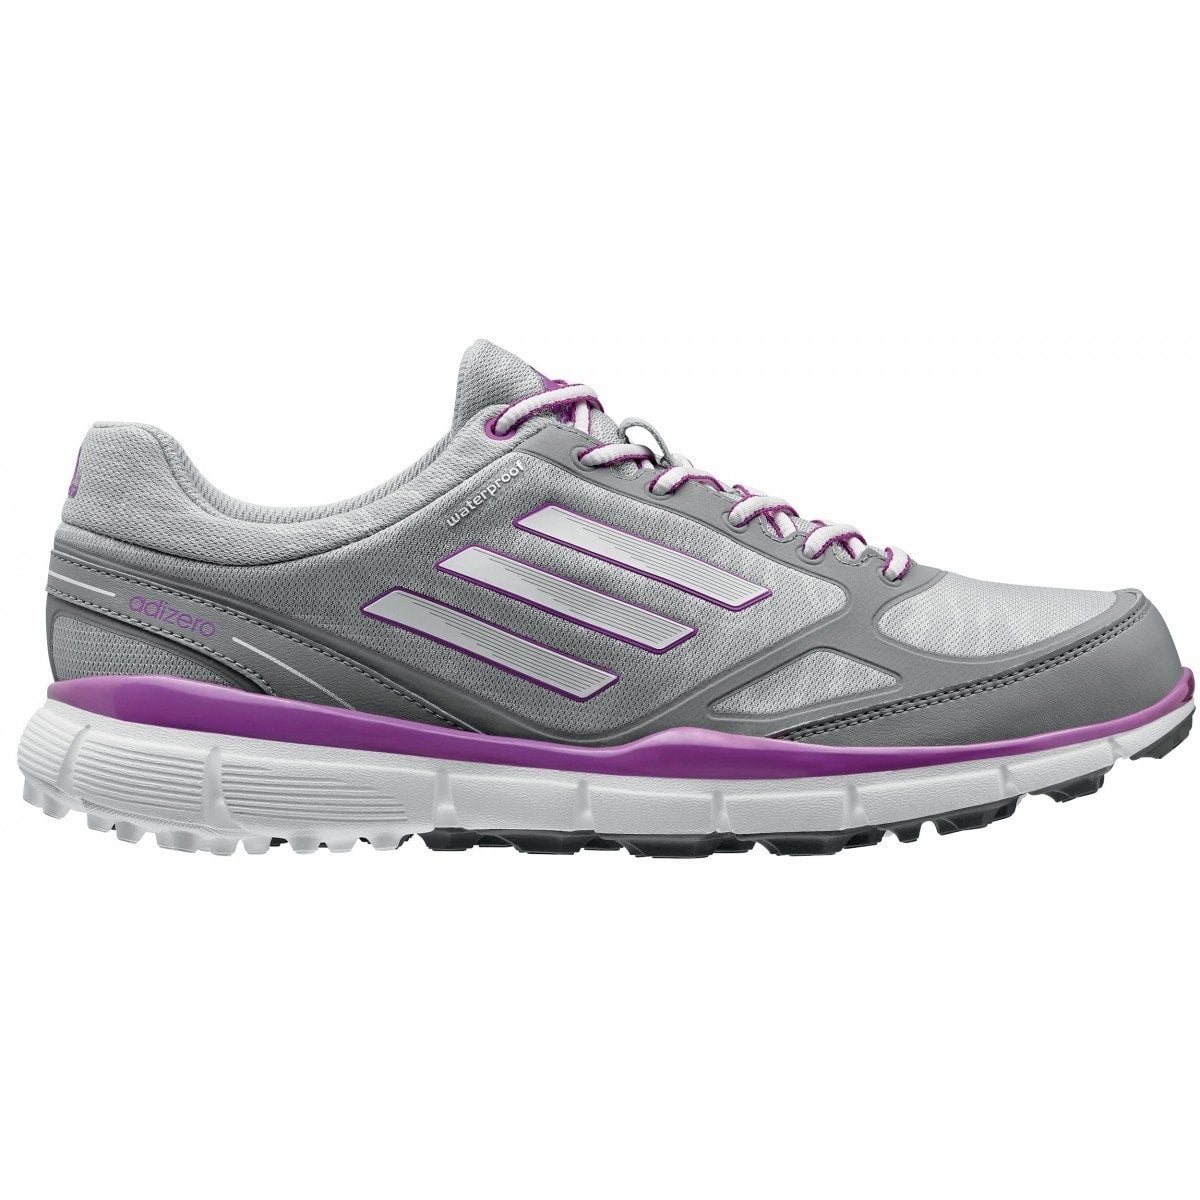 3cdb53541fc3 Buy Adidas Women s Golf Shoes Online at Overstock